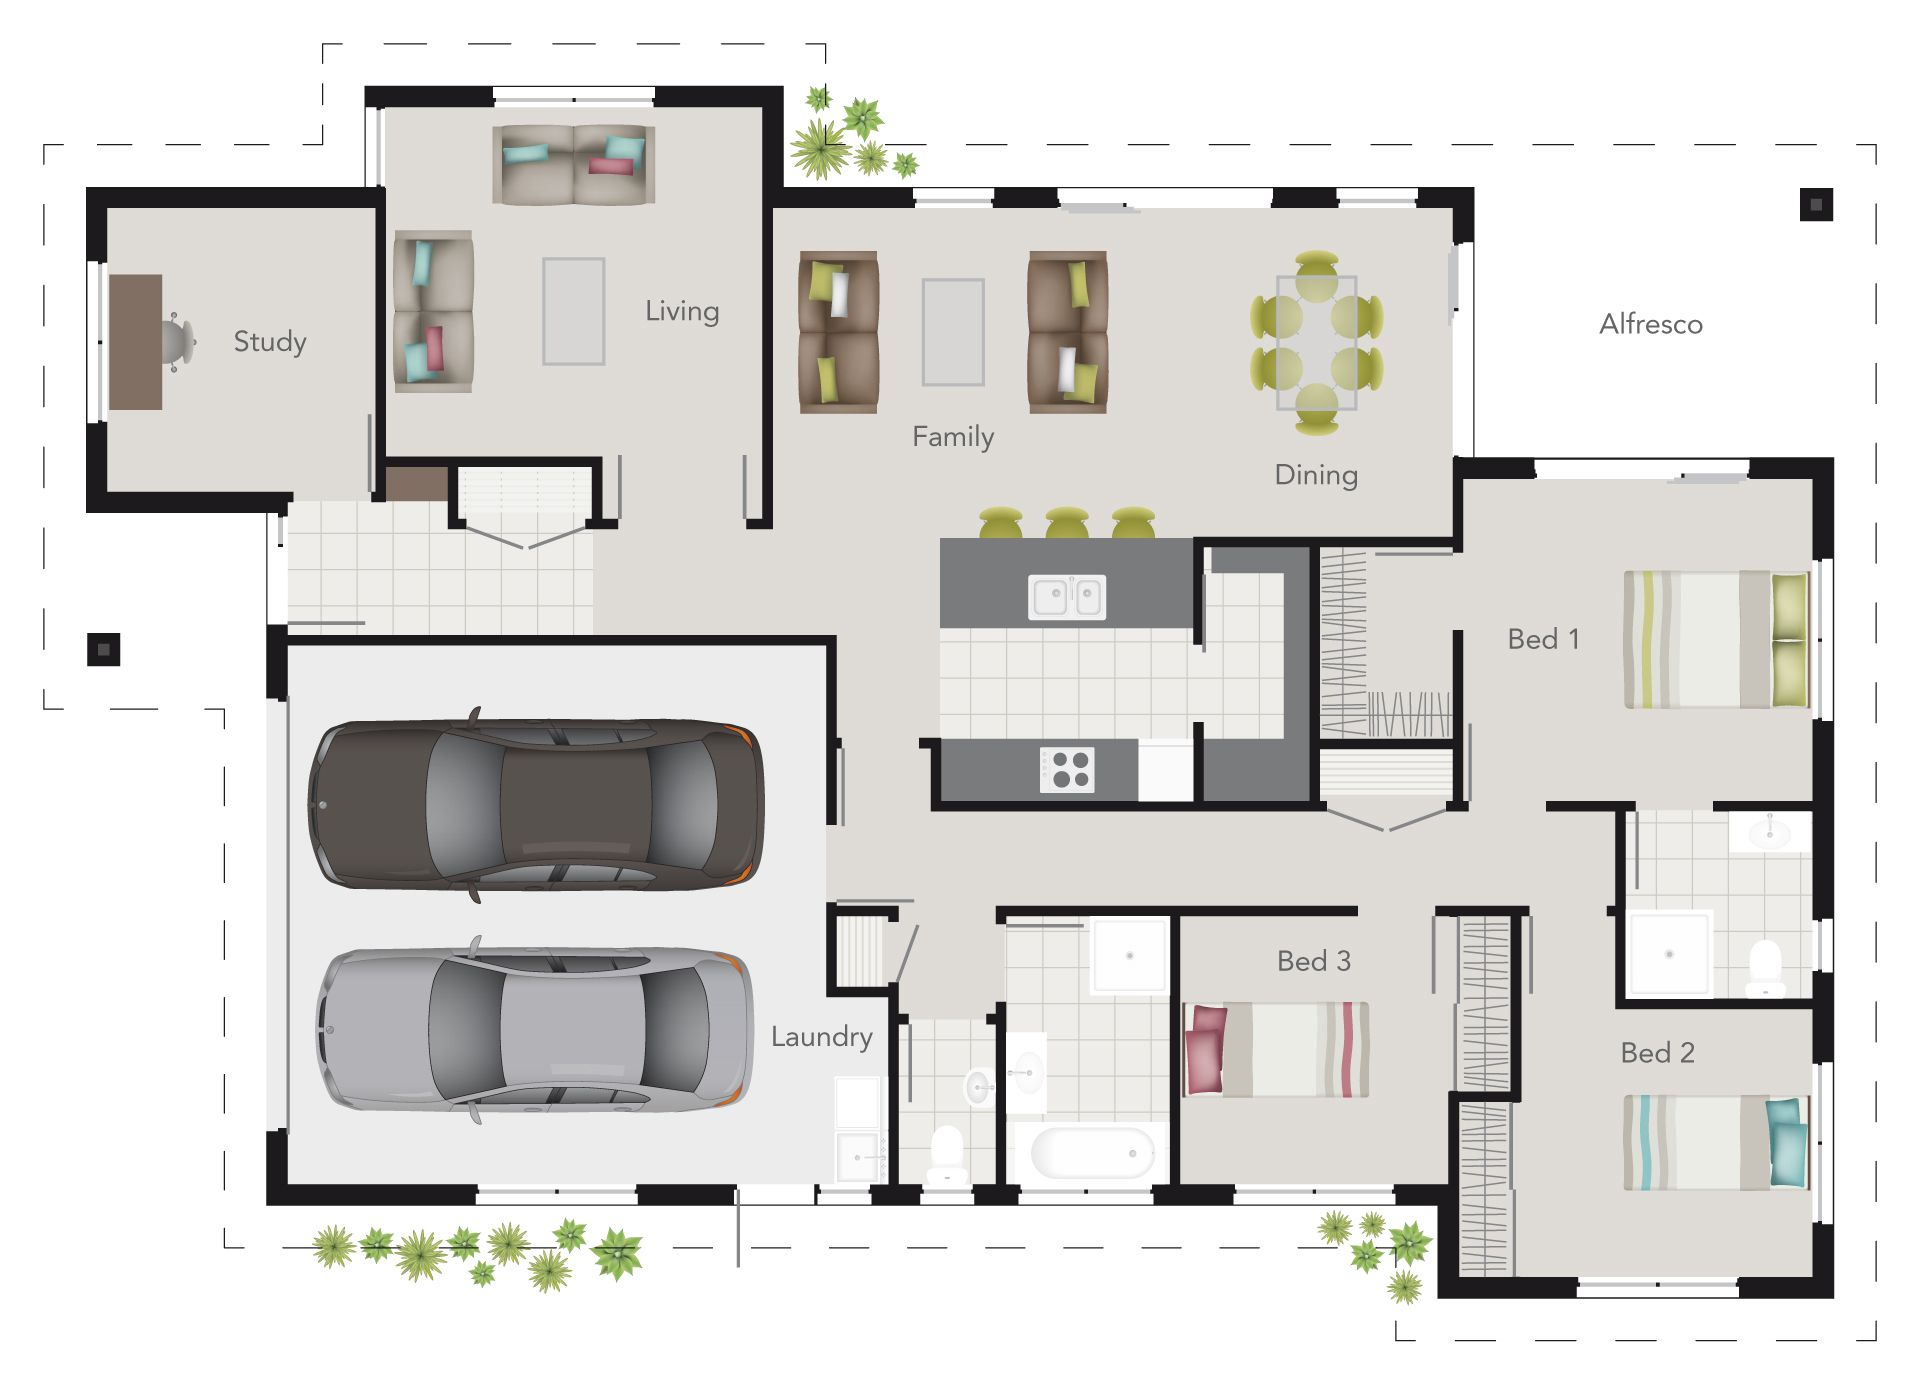 G j gardner wright plan 3 bedroom floor plan with study and living room selection of our g - Room house design ...